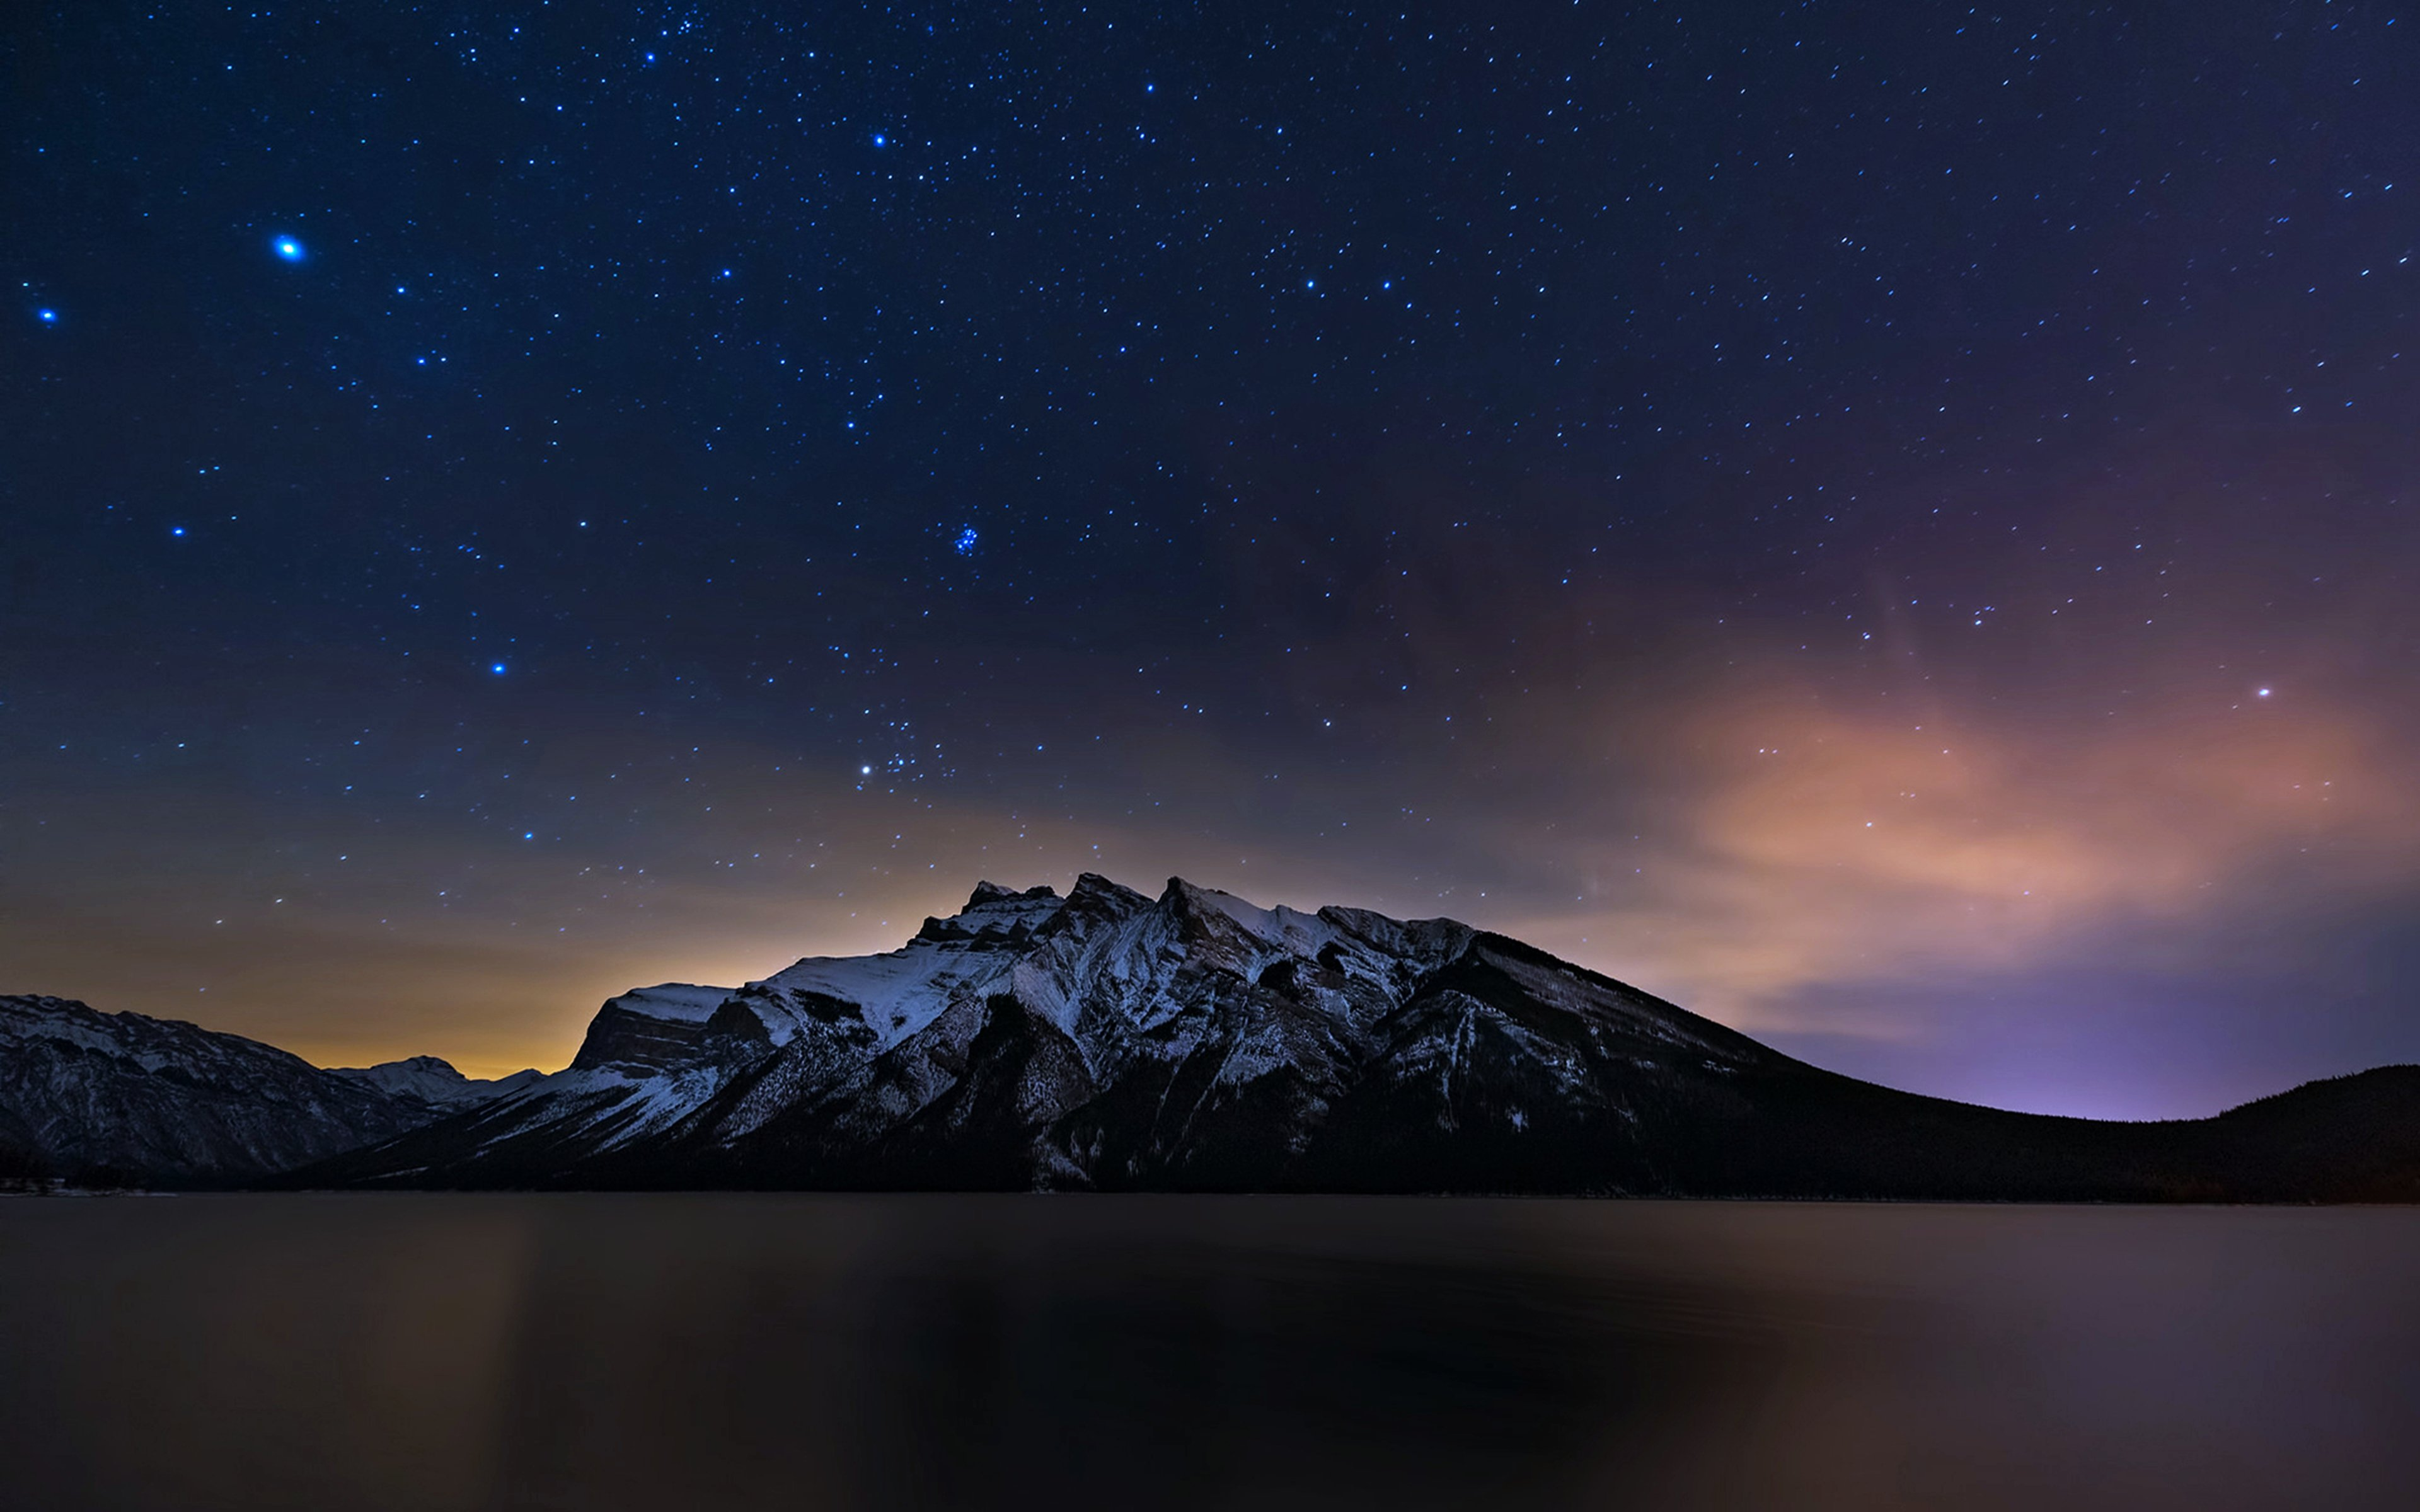 banff alberta canada lakes mountains night stars landscapes clouds